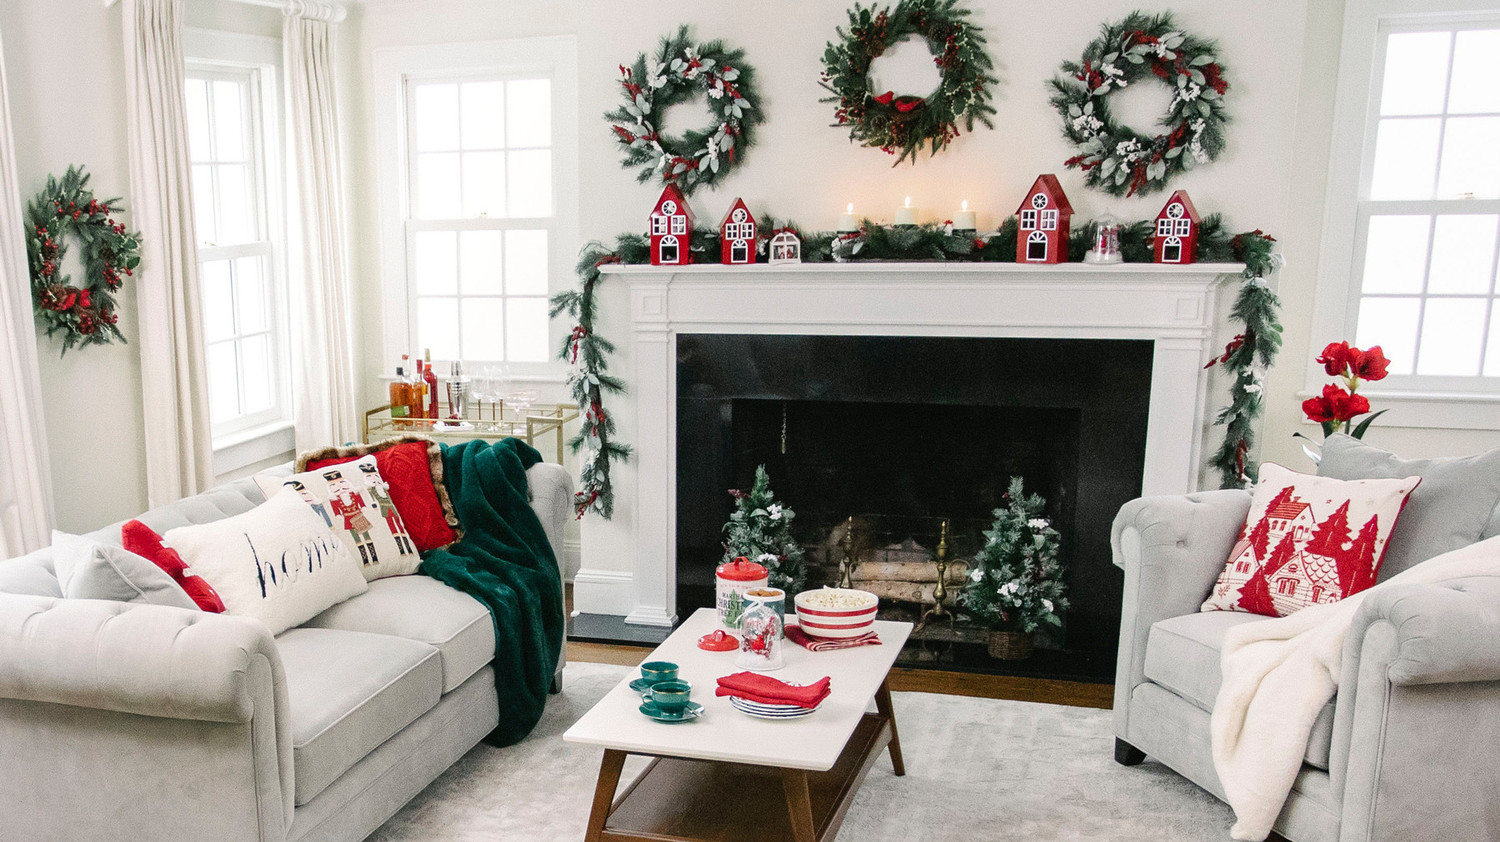 neutral-colored living room with holiday decor